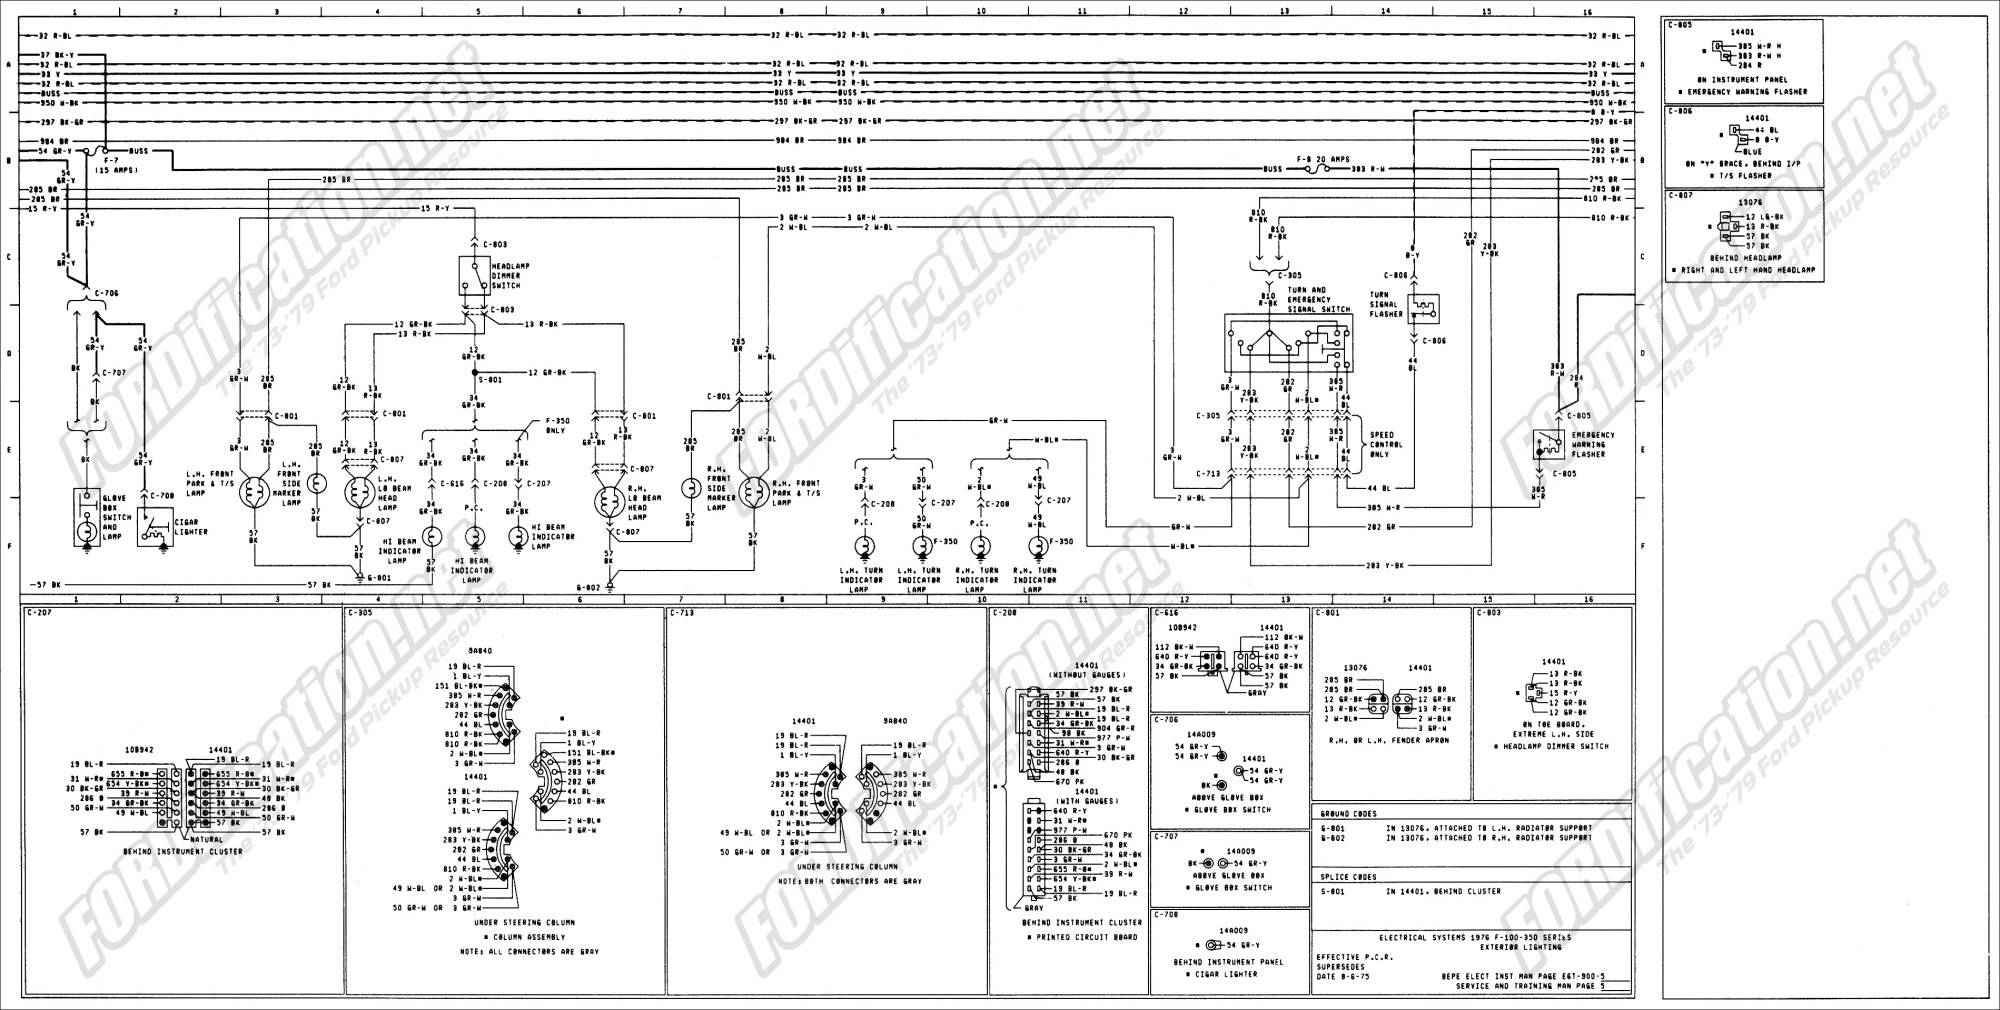 hight resolution of 1974 f250 wiring harness wiring diagrams for 1974 ford f250 wire diagram 1974 f250 wire schematic